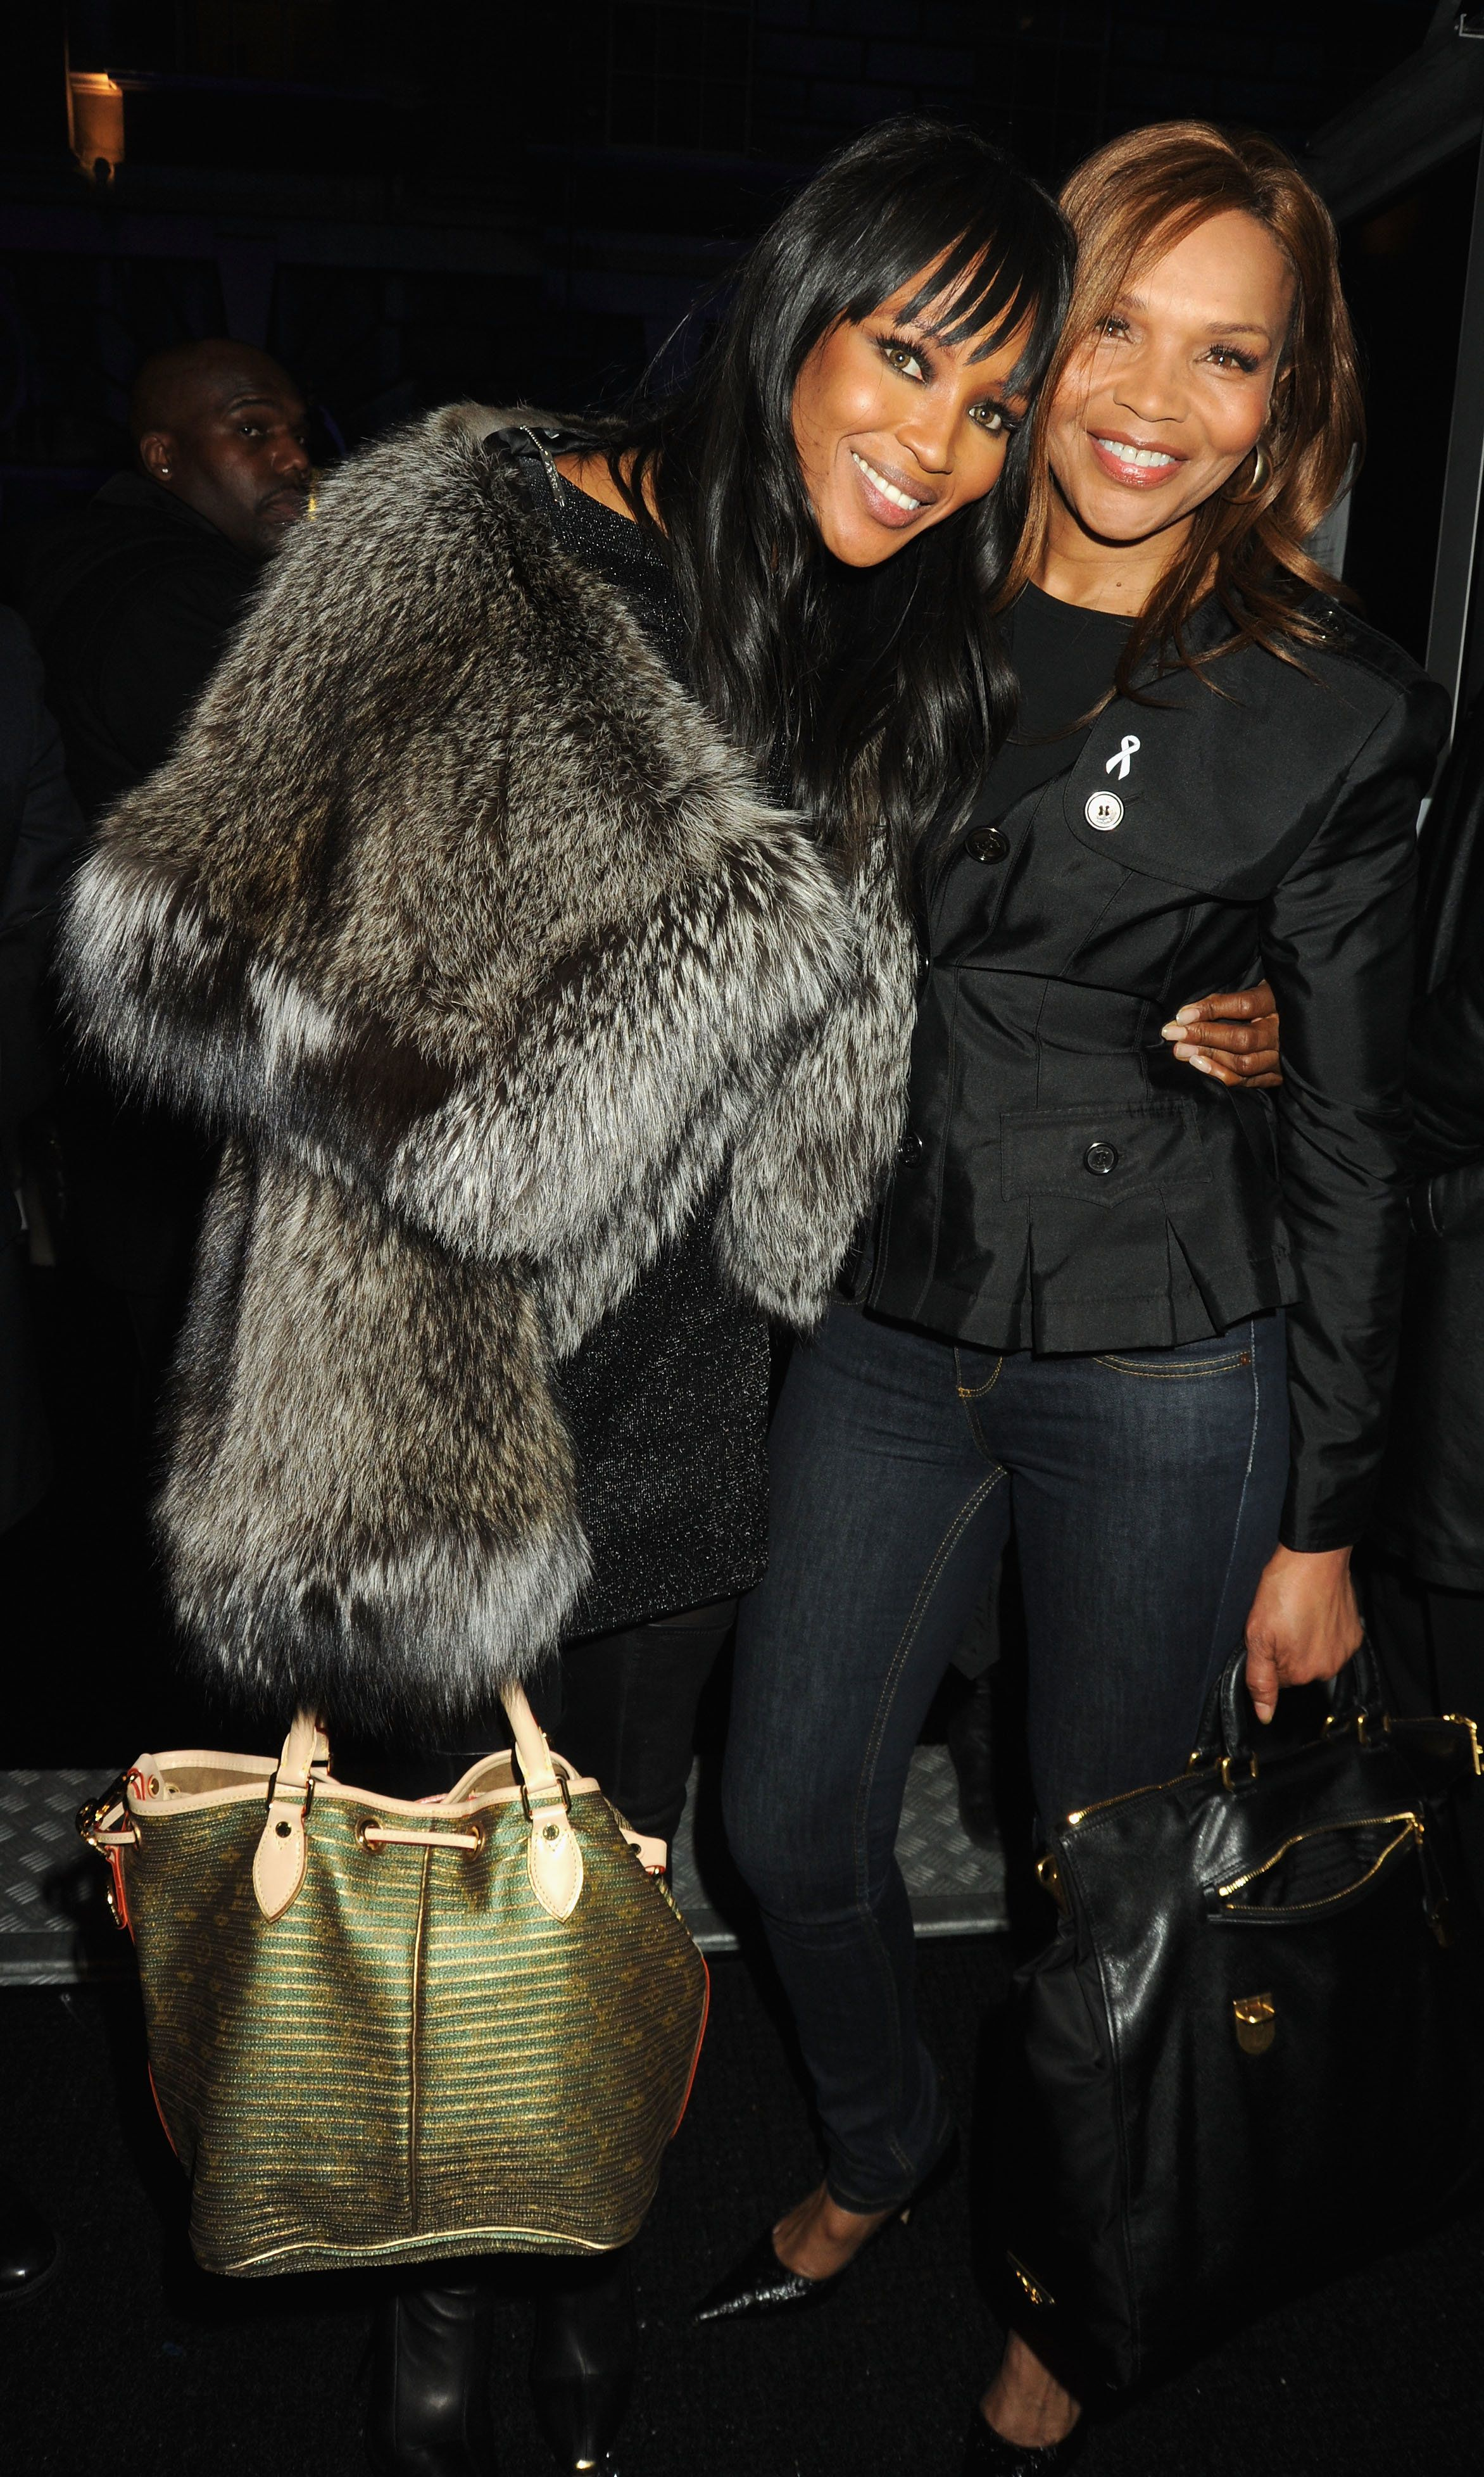 Naomi Campbell and Her Mom Take Mother-Daughter Style to the Next Level in Burberry's Holiday Campaign Naomi Campbell and Her Mom Take Mother-Daughter Style to the Next Level in Burberry's Holiday Campaign new foto